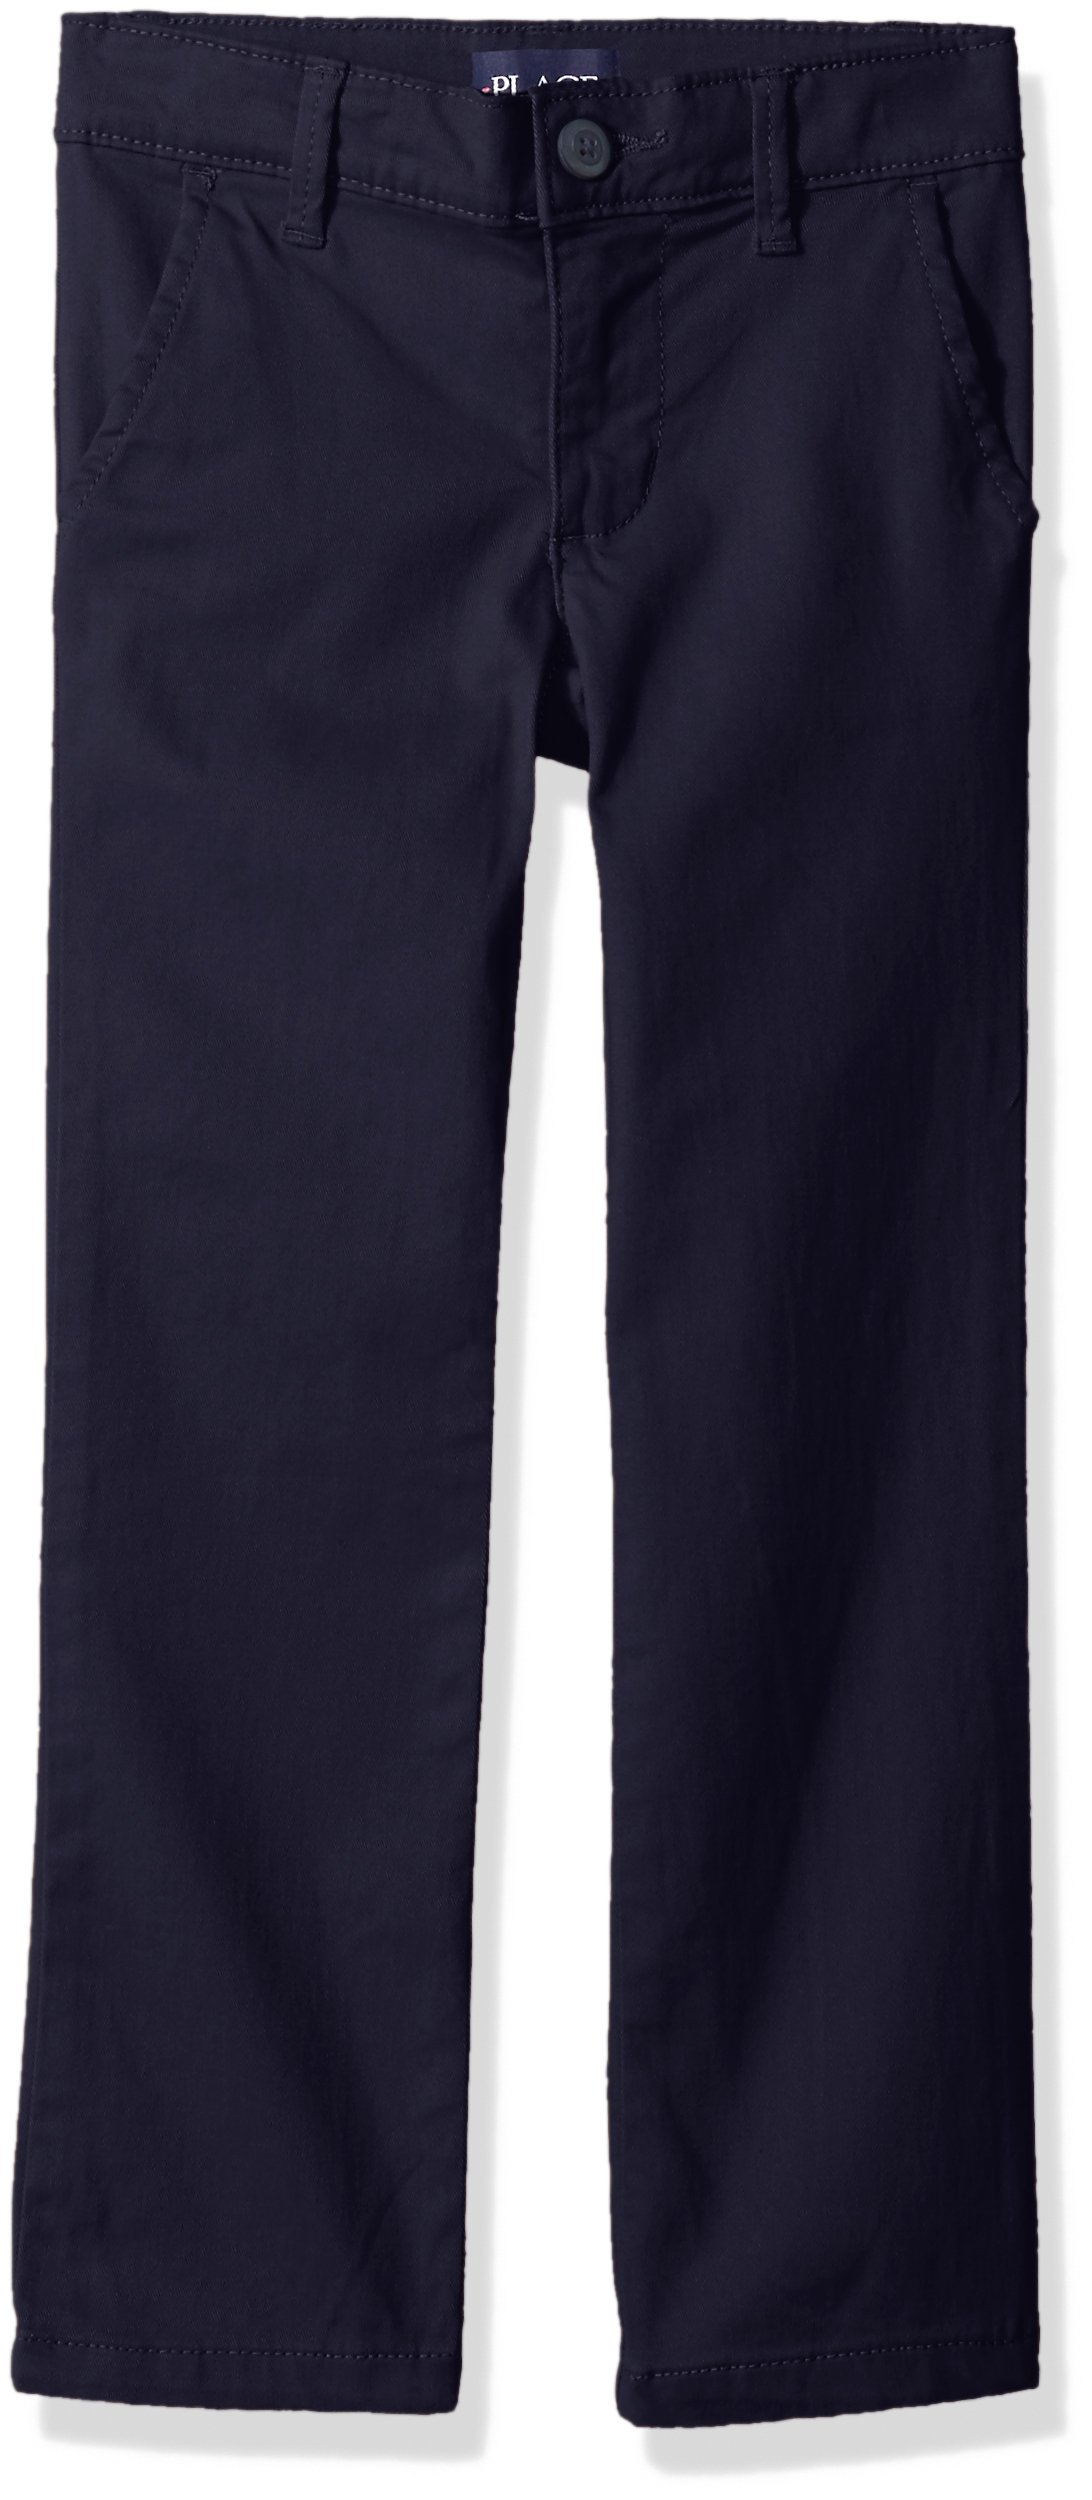 The Children's Place Girls Size' Skinny Uniform Pants, Tidal 4406, 5 Plus